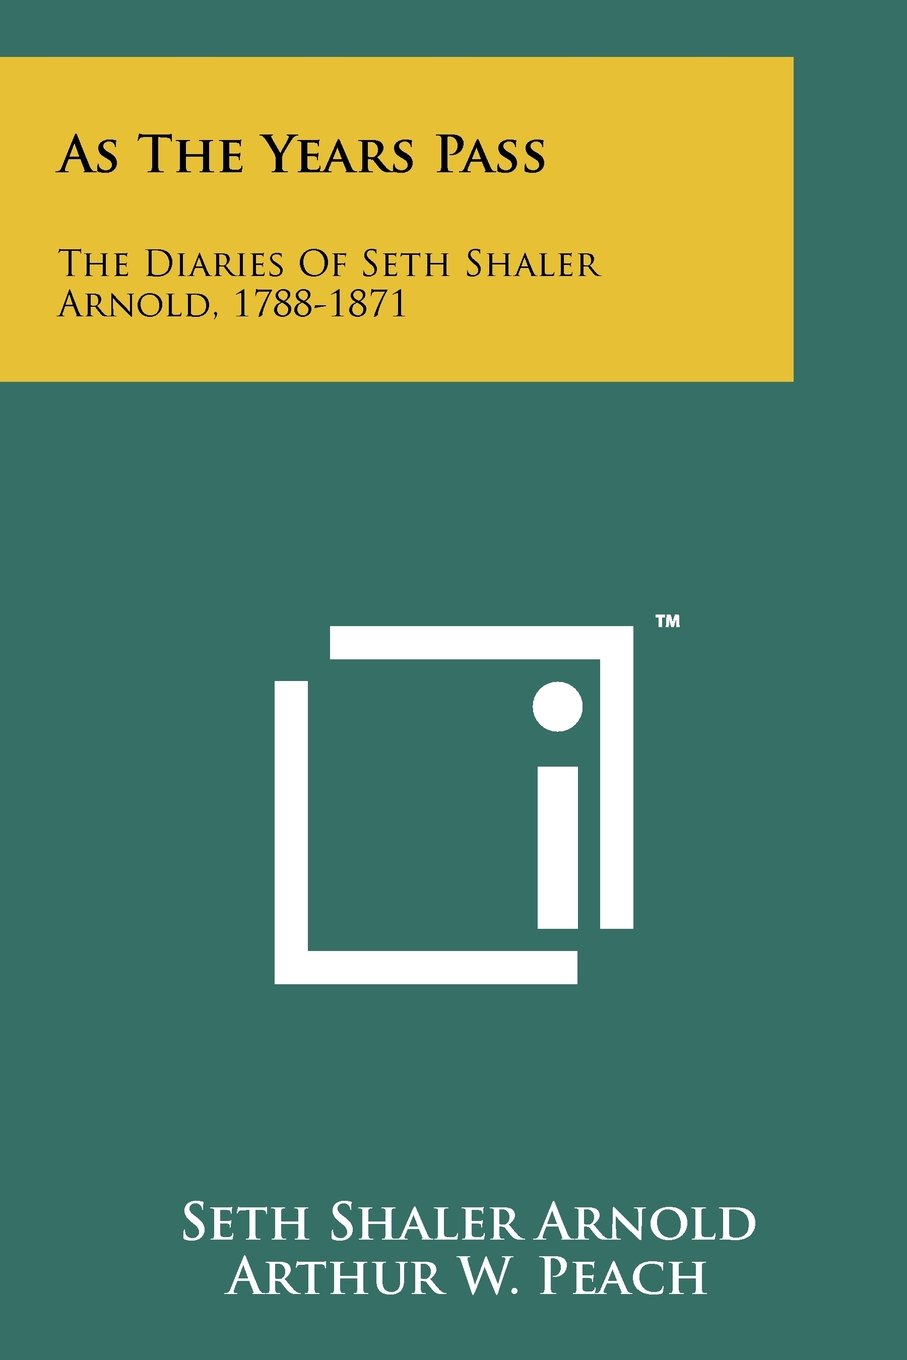 Download As the Years Pass: The Diaries of Seth Shaler Arnold, 1788-1871 ebook